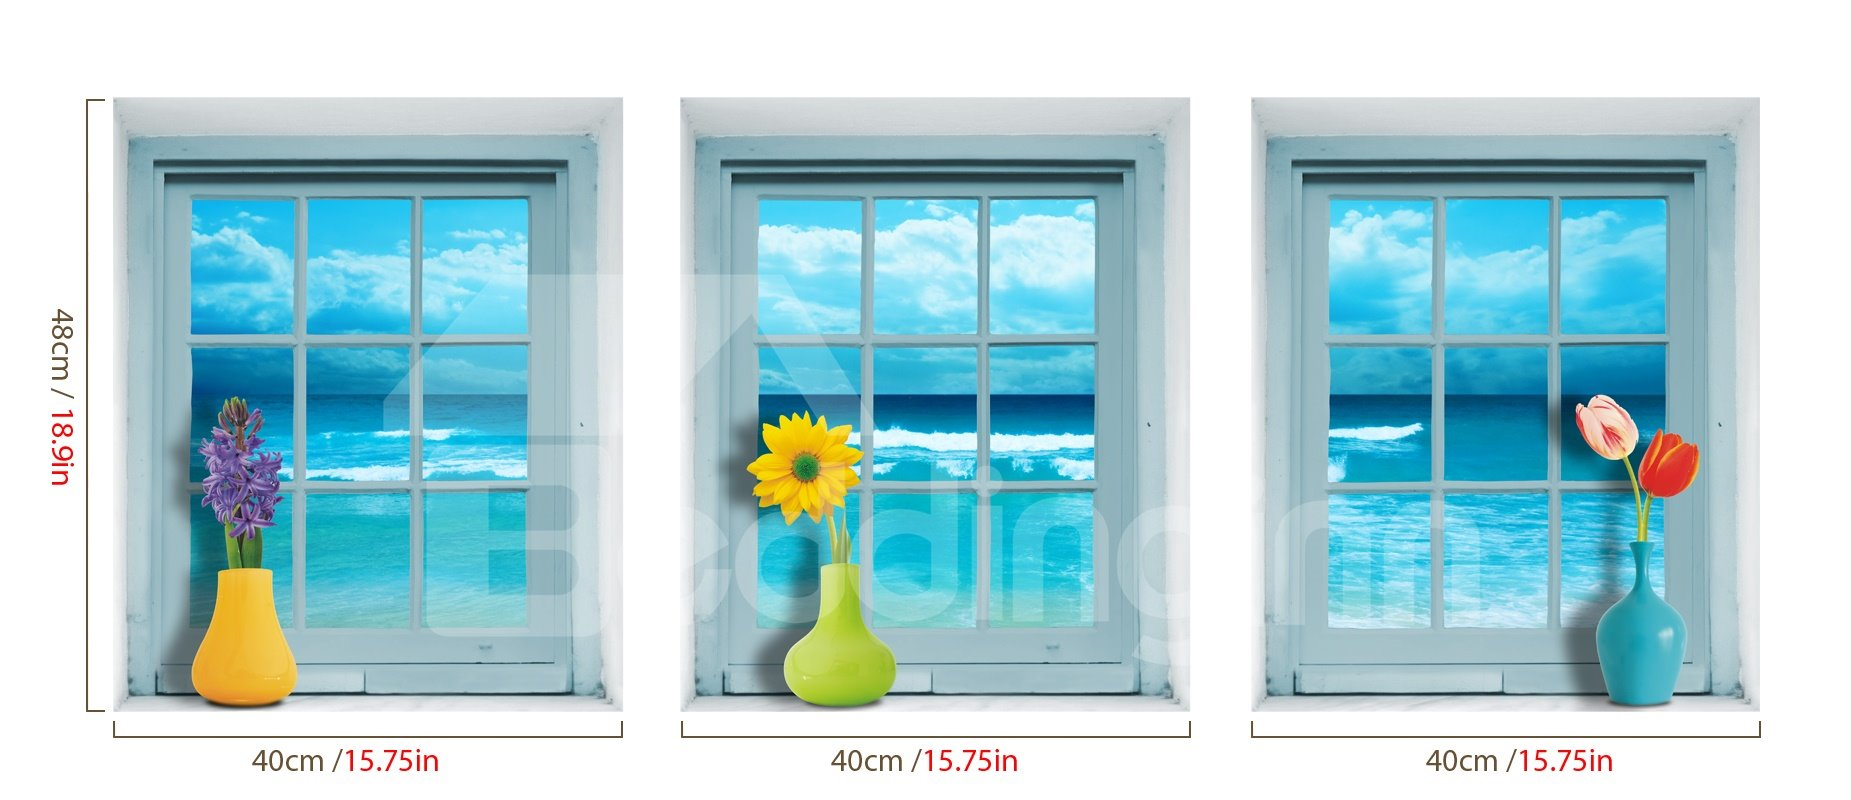 Blue Stunning Window and Flower Vase Pattern 3 Pieces Wall Stickers